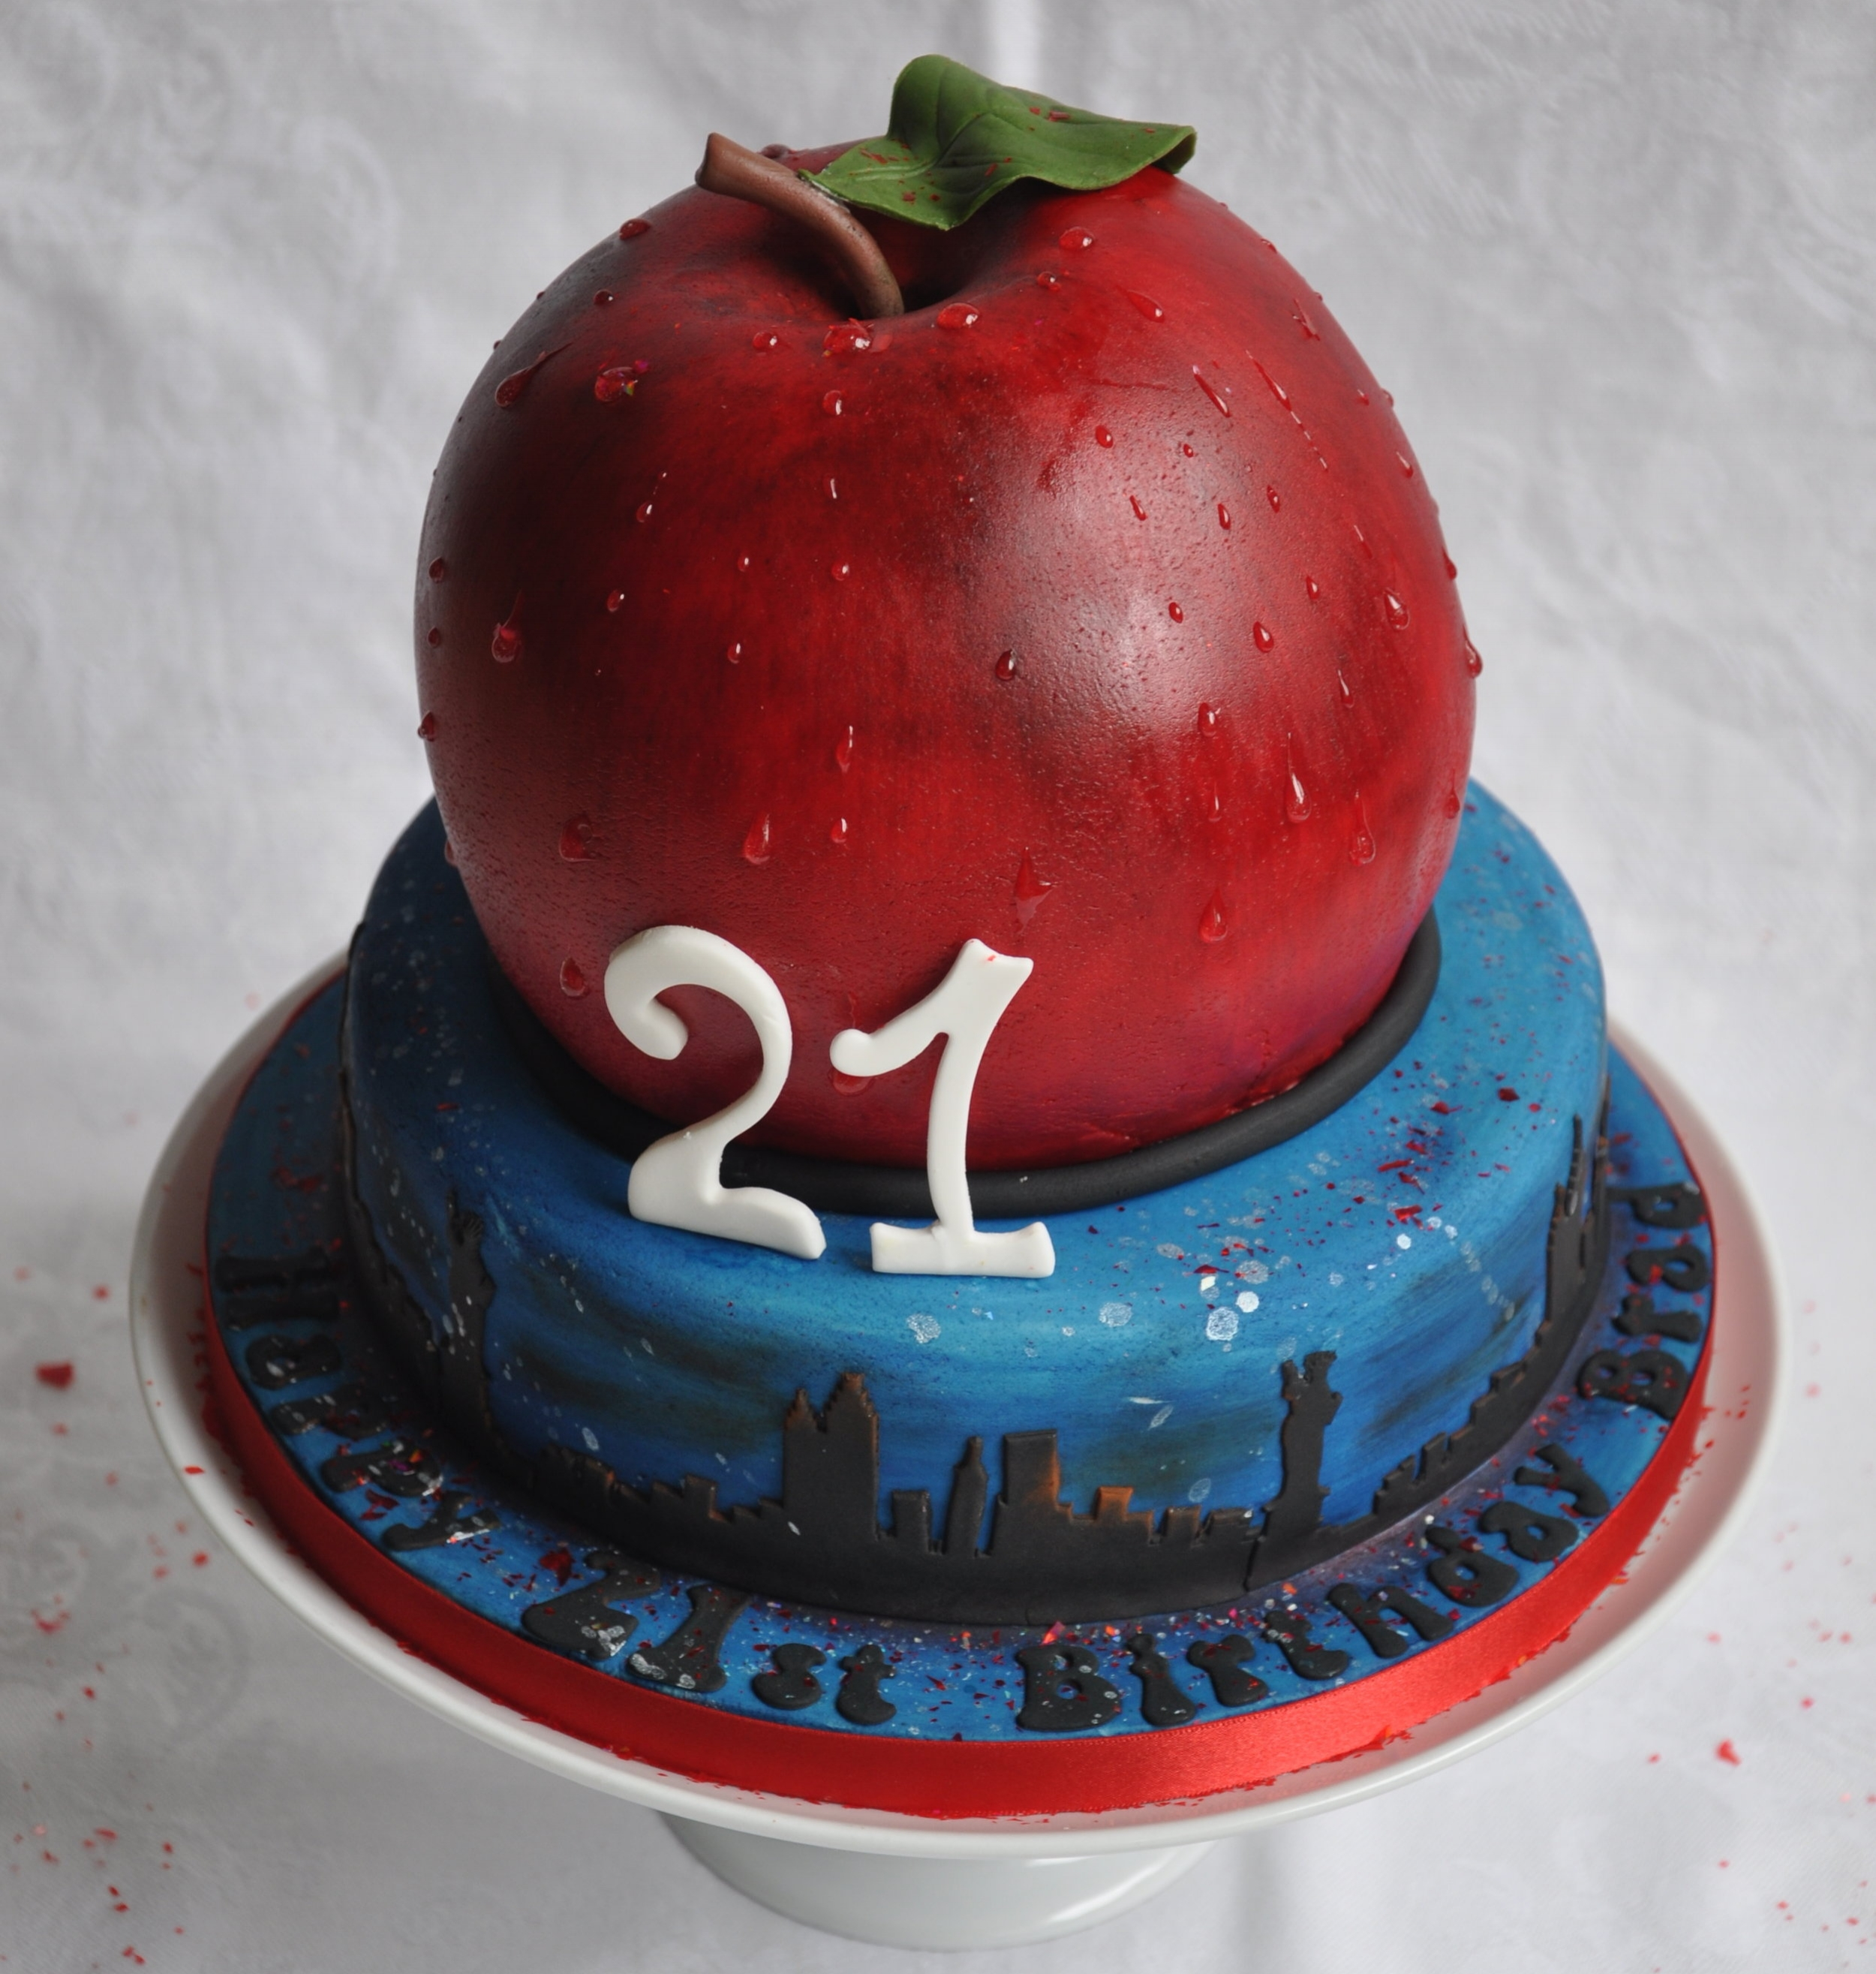 Big Apple - A cake made for a milestone birthday, Brad's parents gave him this cake as a clue to where he was going for a wonderful holiday to celebrate his birthday – any idea?A two tier cake, the apple was covered and painted to look realistic with drips of dew and a lifelike leaf. Placed over a New York night sky, with silhouettes of the Statue of Liberty and Empire State Building this cake is sure to be a big hit.